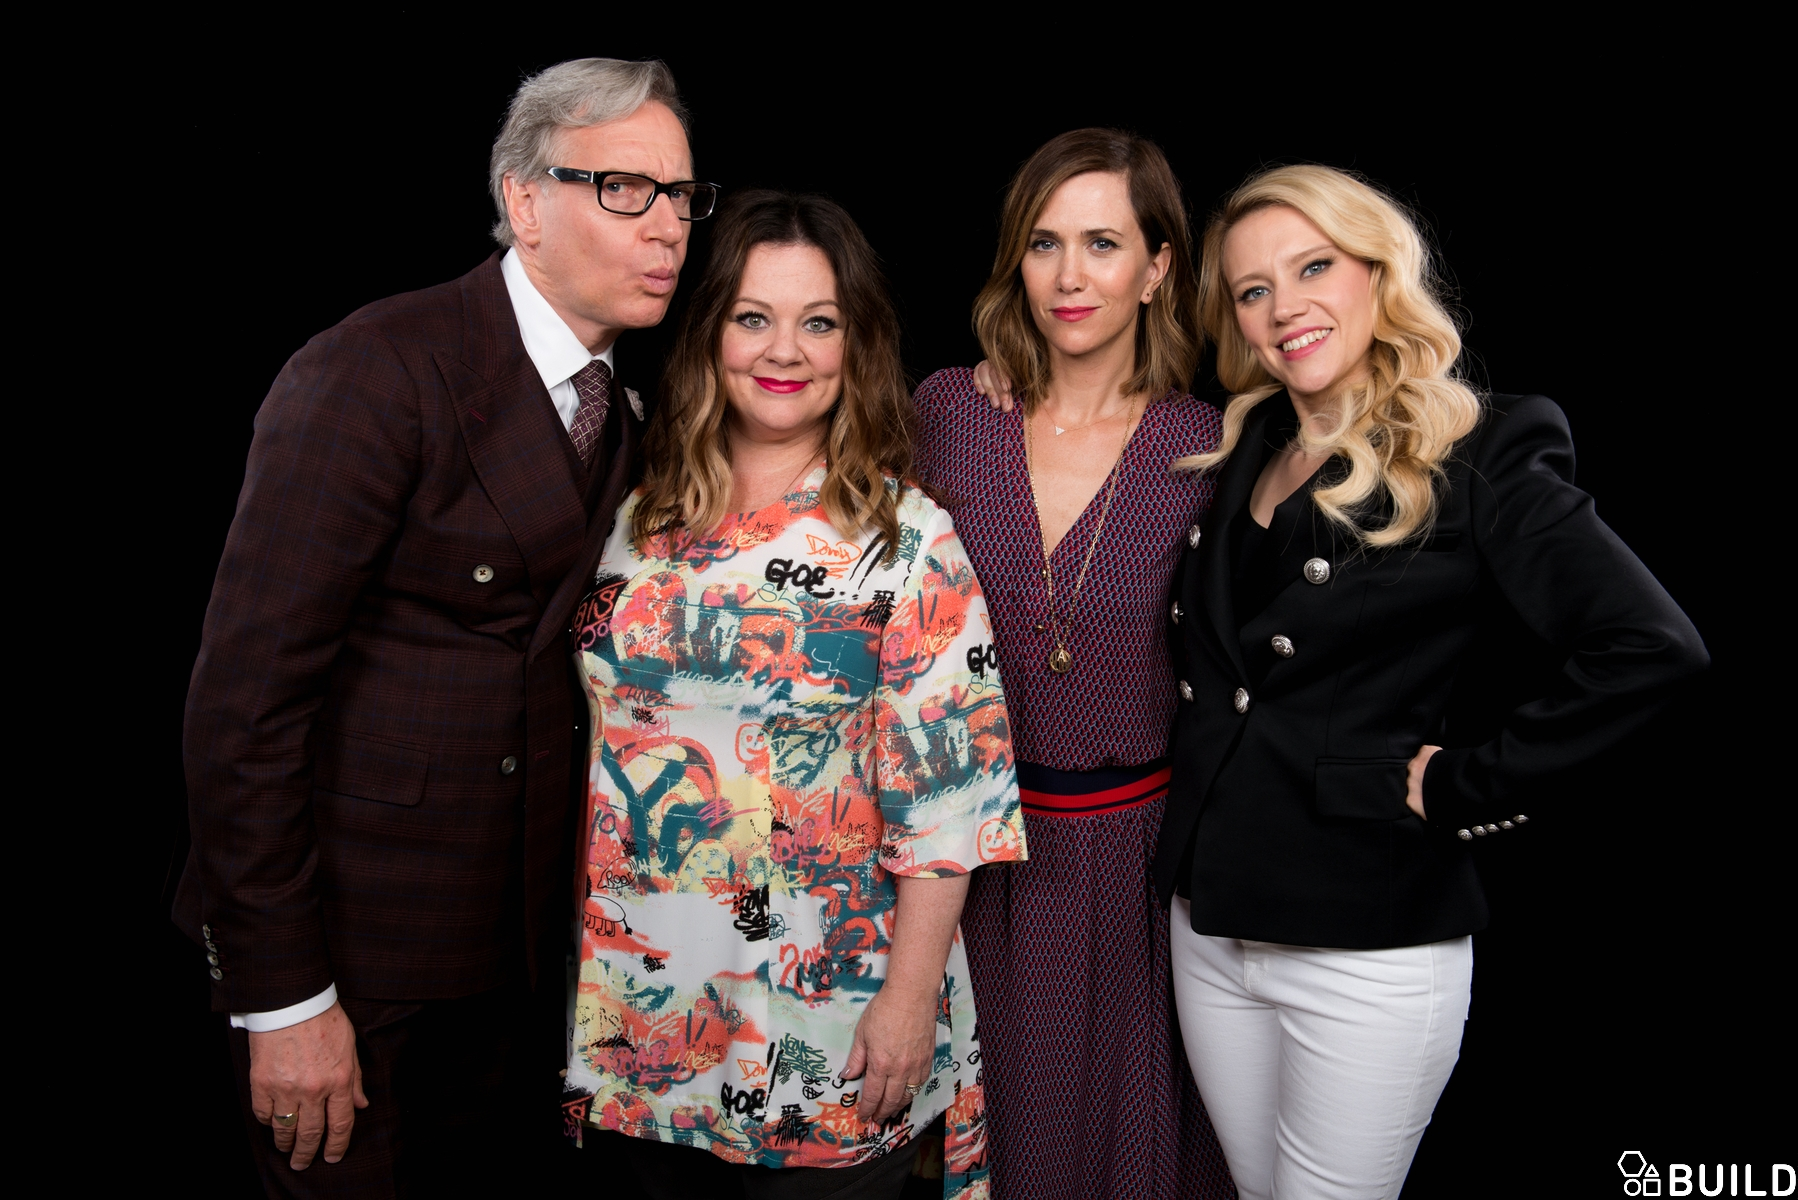 Melissa McCarthy, Kristen, Kate McKinnon and Paul Feig visit AOL Hq for Build on July 12, 2016 in New York. Photos by Noam Galai